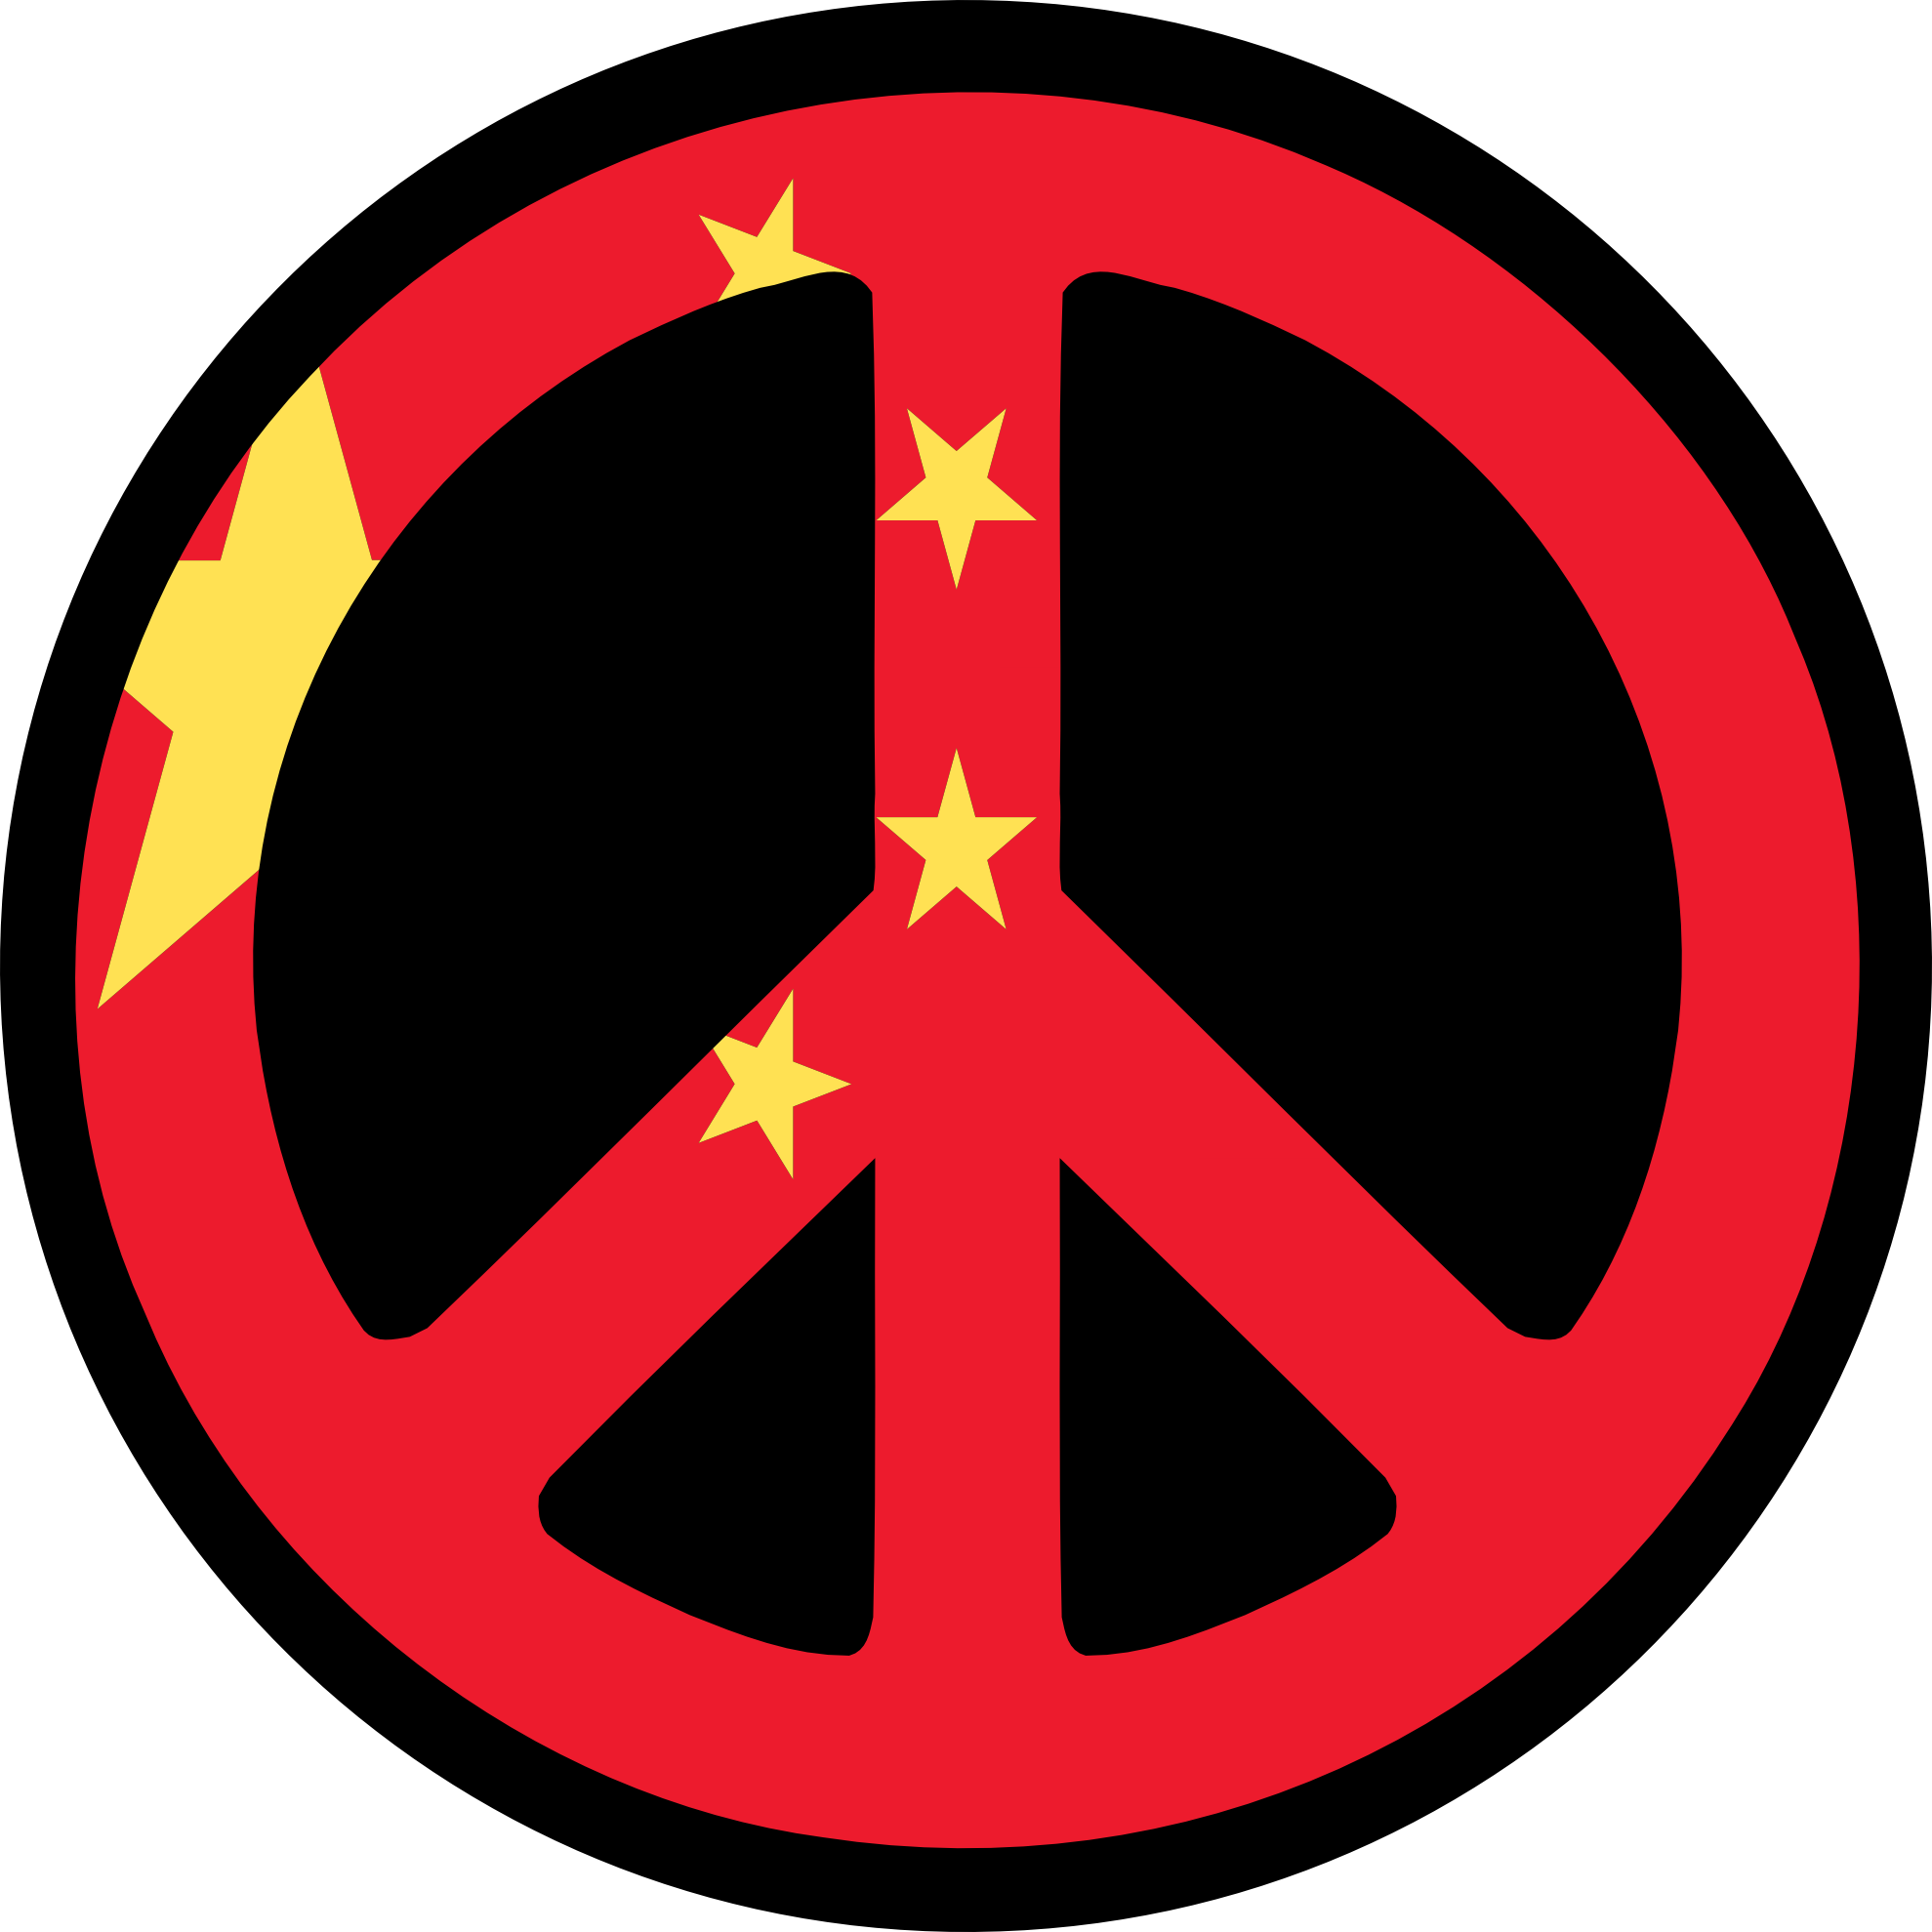 Chinese Peace Symbol Clipart.